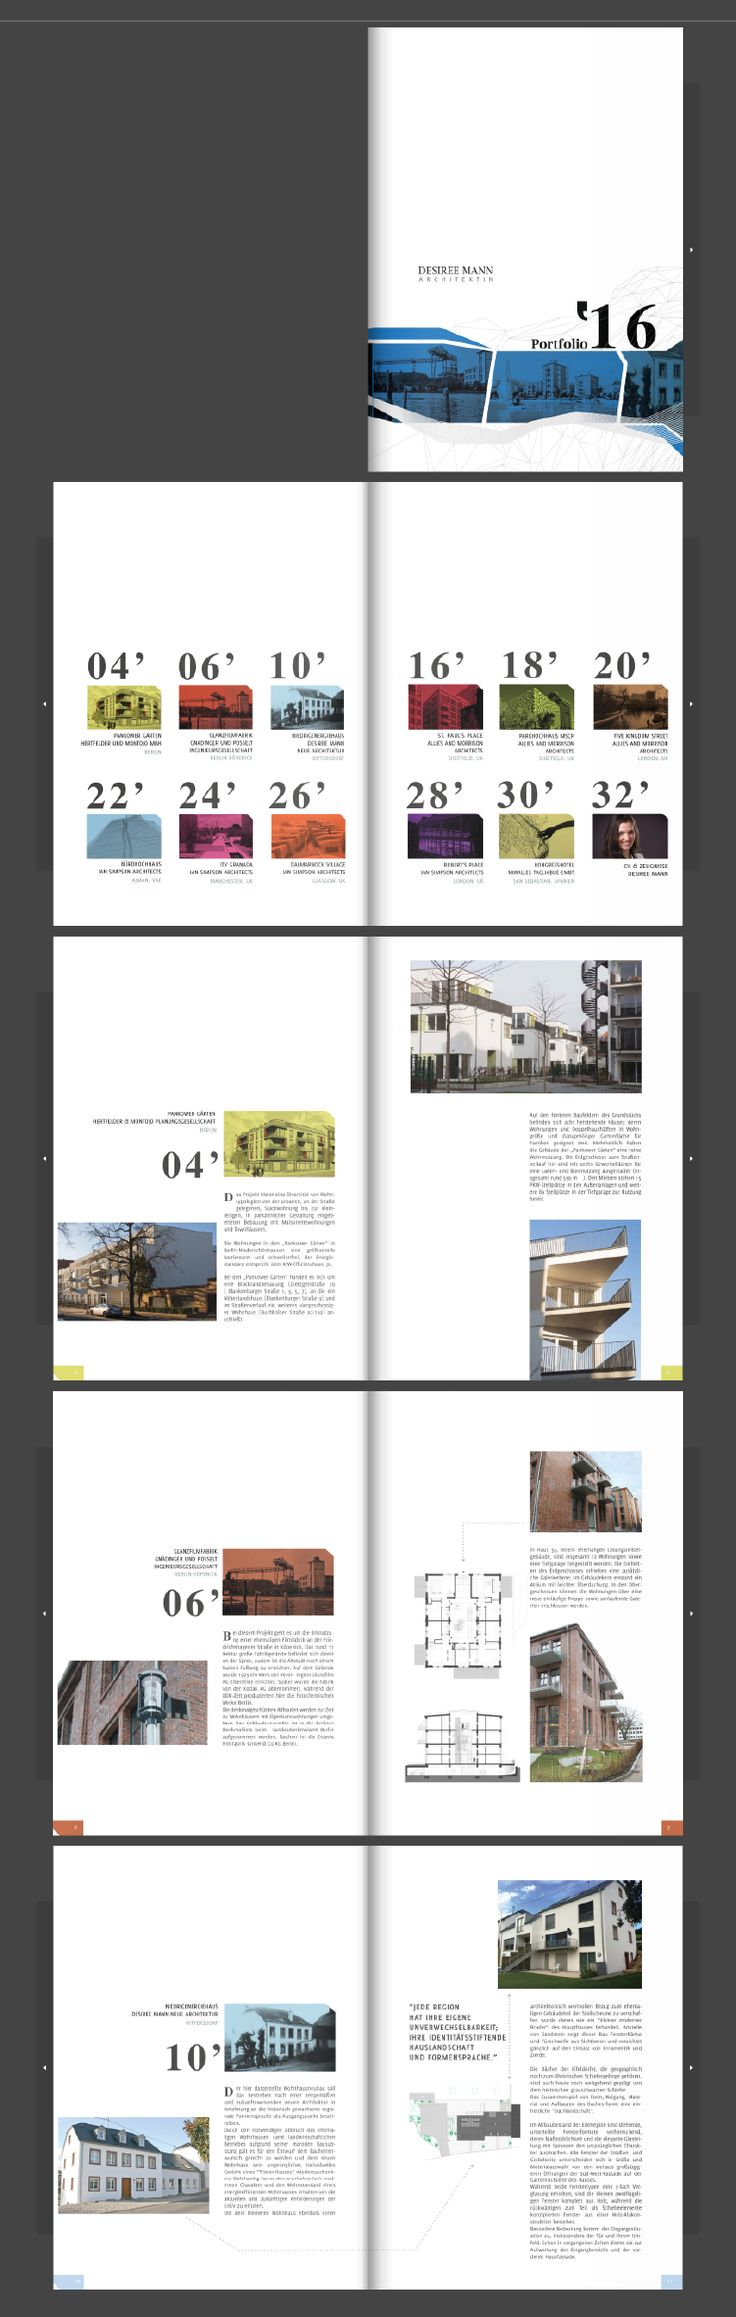 Desiree Mann's architecture portfolio is a job well done. Layouts look professional and stylish.